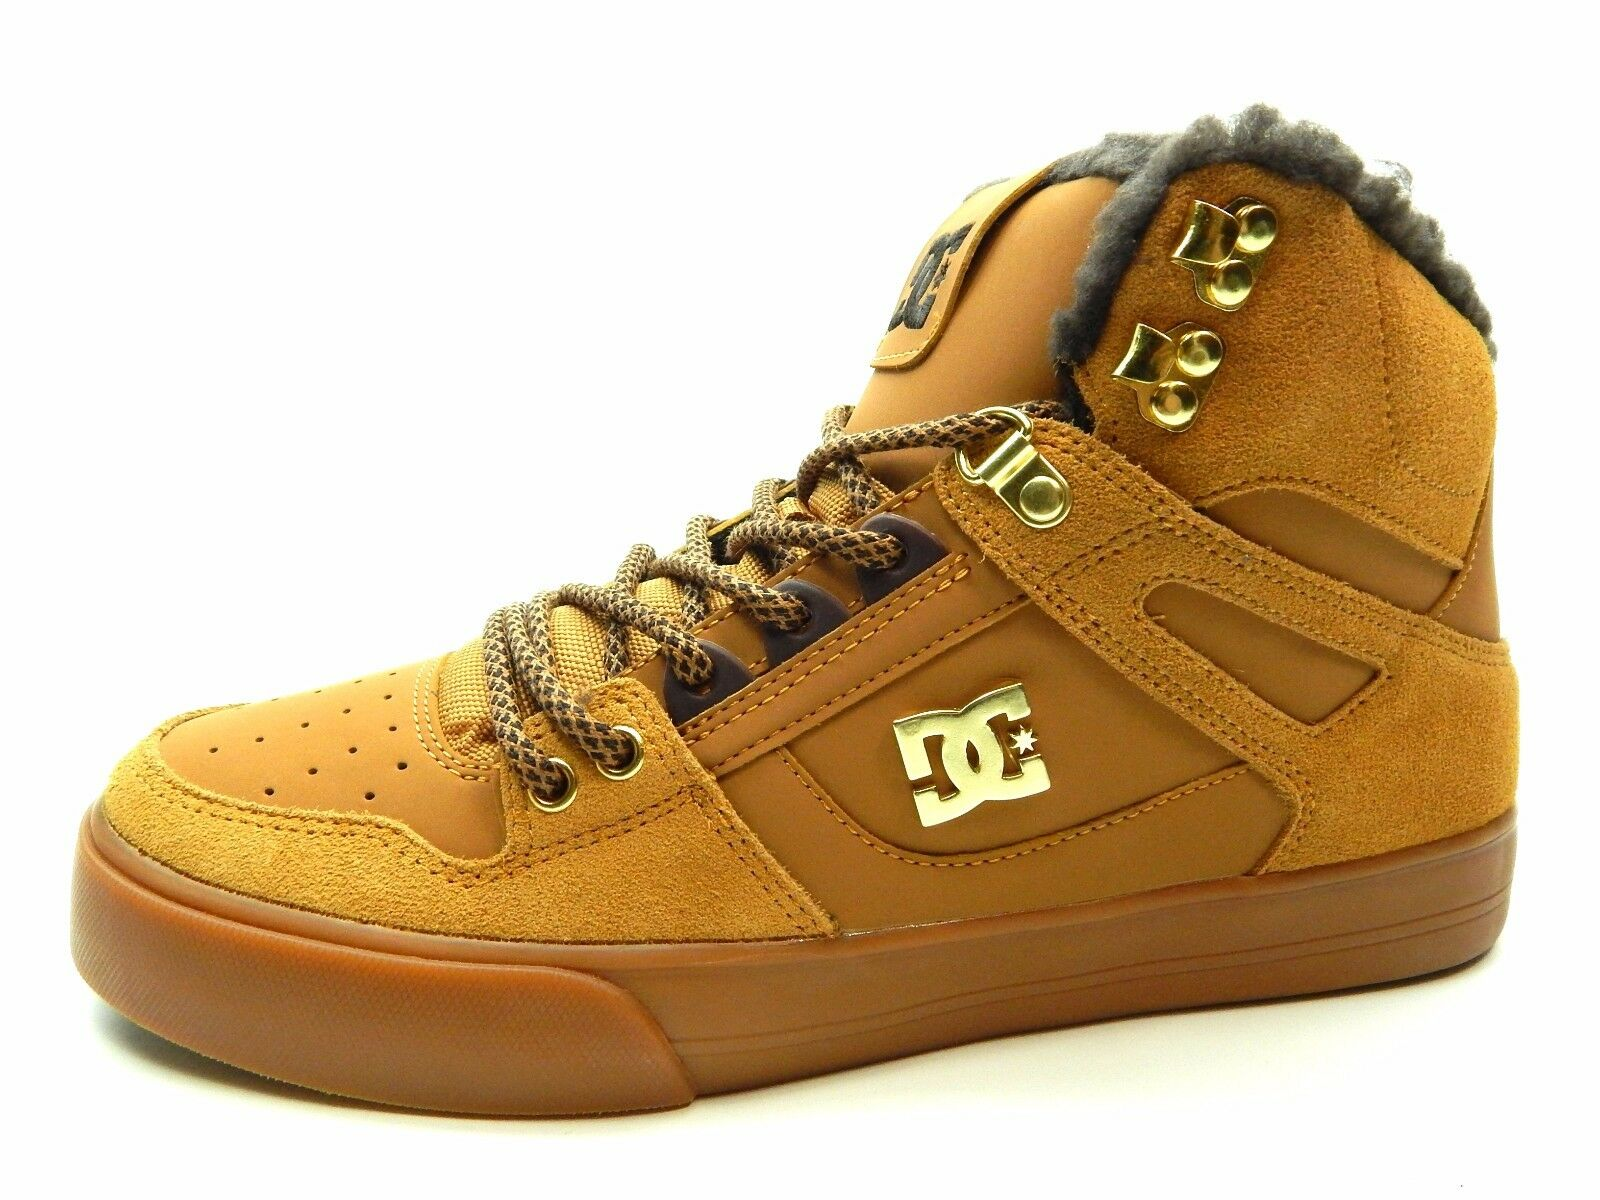 DC SPARTAN  HIGH WC WNT Wheat Dark Chocolate uomo Shoes Size 8 Scarpe classiche da uomo